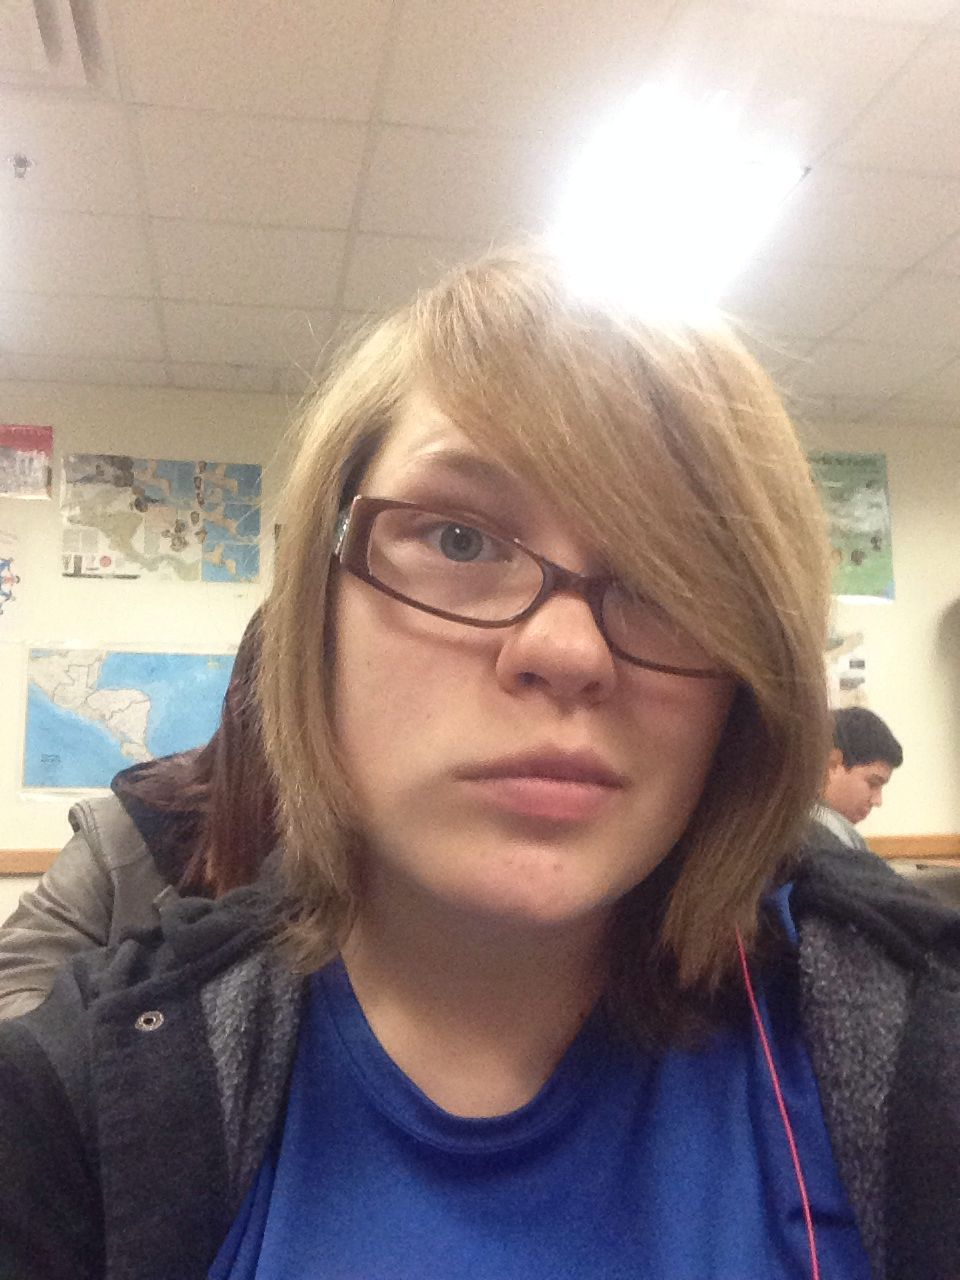 Rocking the new but old hairstyle look like ium in eighth grade